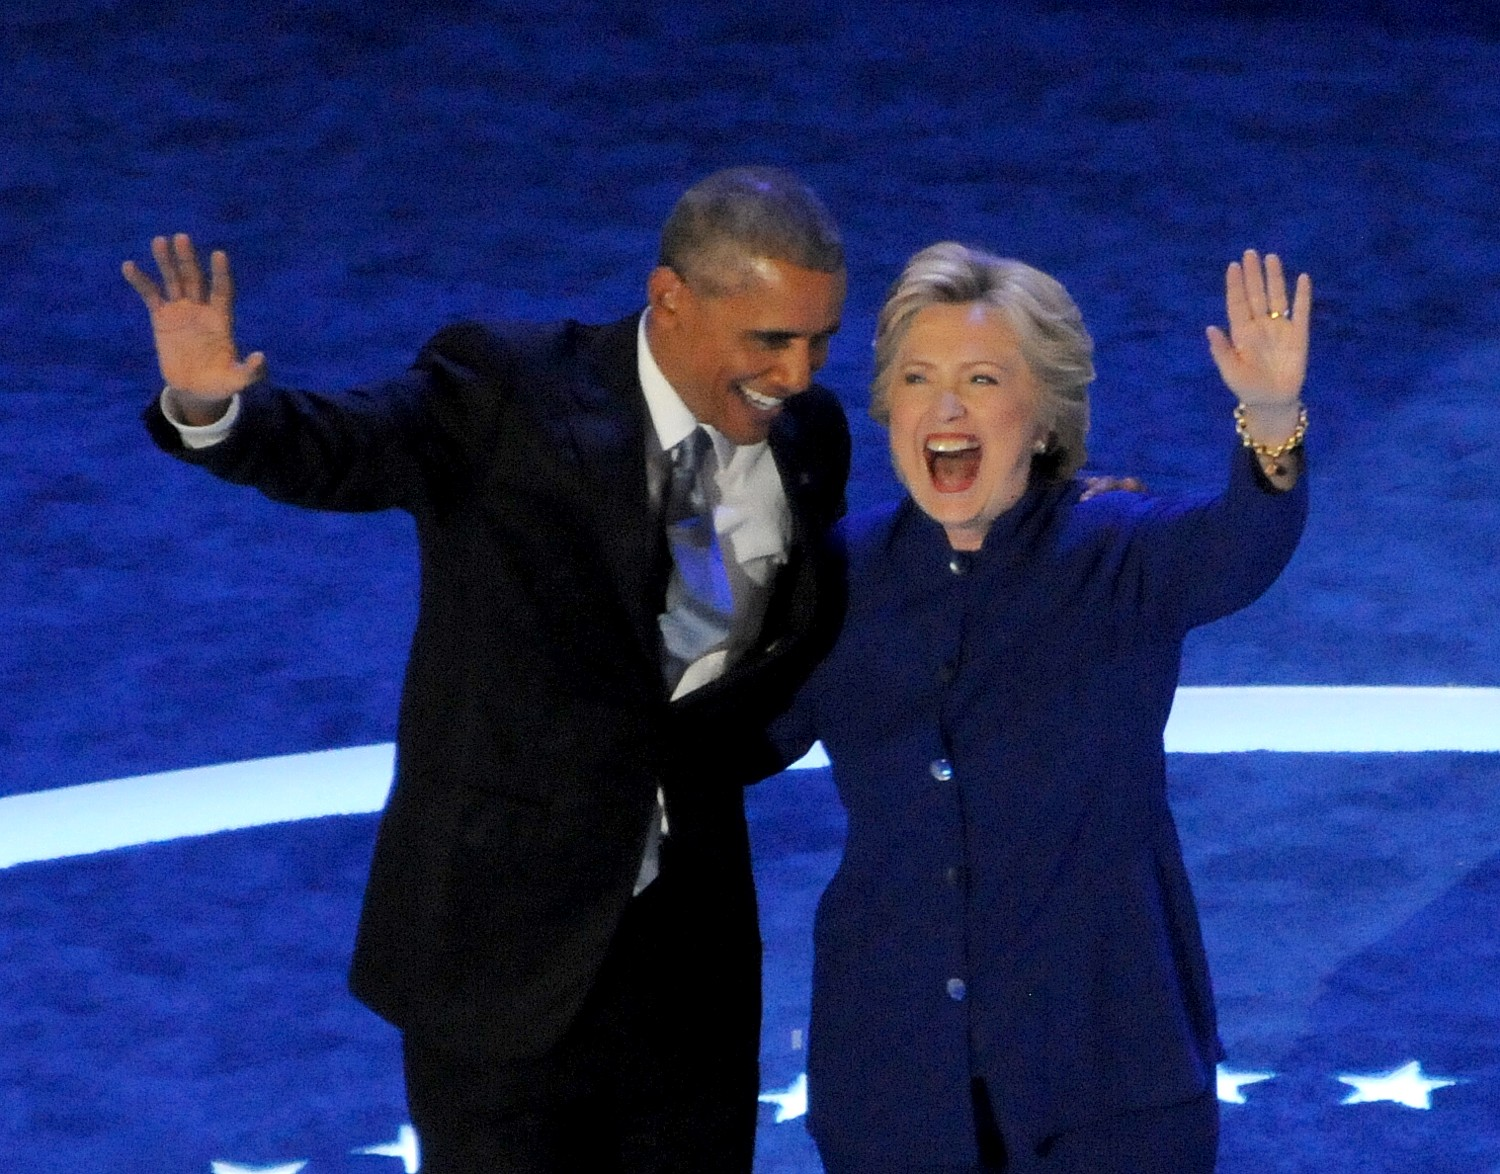 President Barack Obama with Hillary Clinton, first woman to become the nominee for president of a major party, after his speech to the Democratic National Convention, Philadelphia, July 27, 2016 © 2016 Karen Rubin/news-photos-features.com